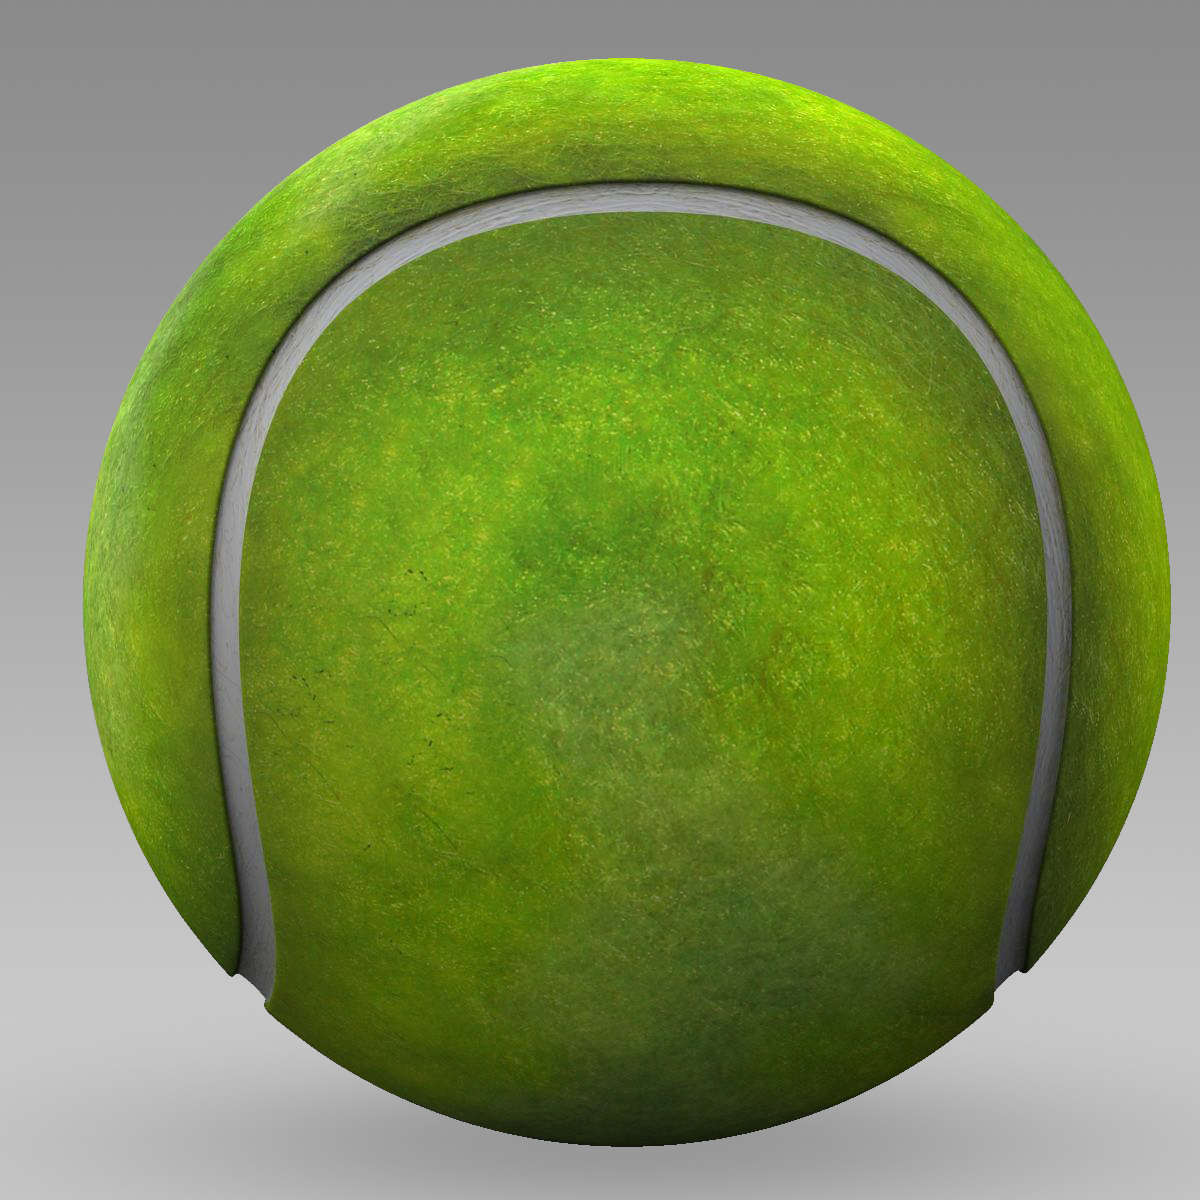 tennis ball lowpoly 3d model 3ds max fbx c4d ma mb obj 166097